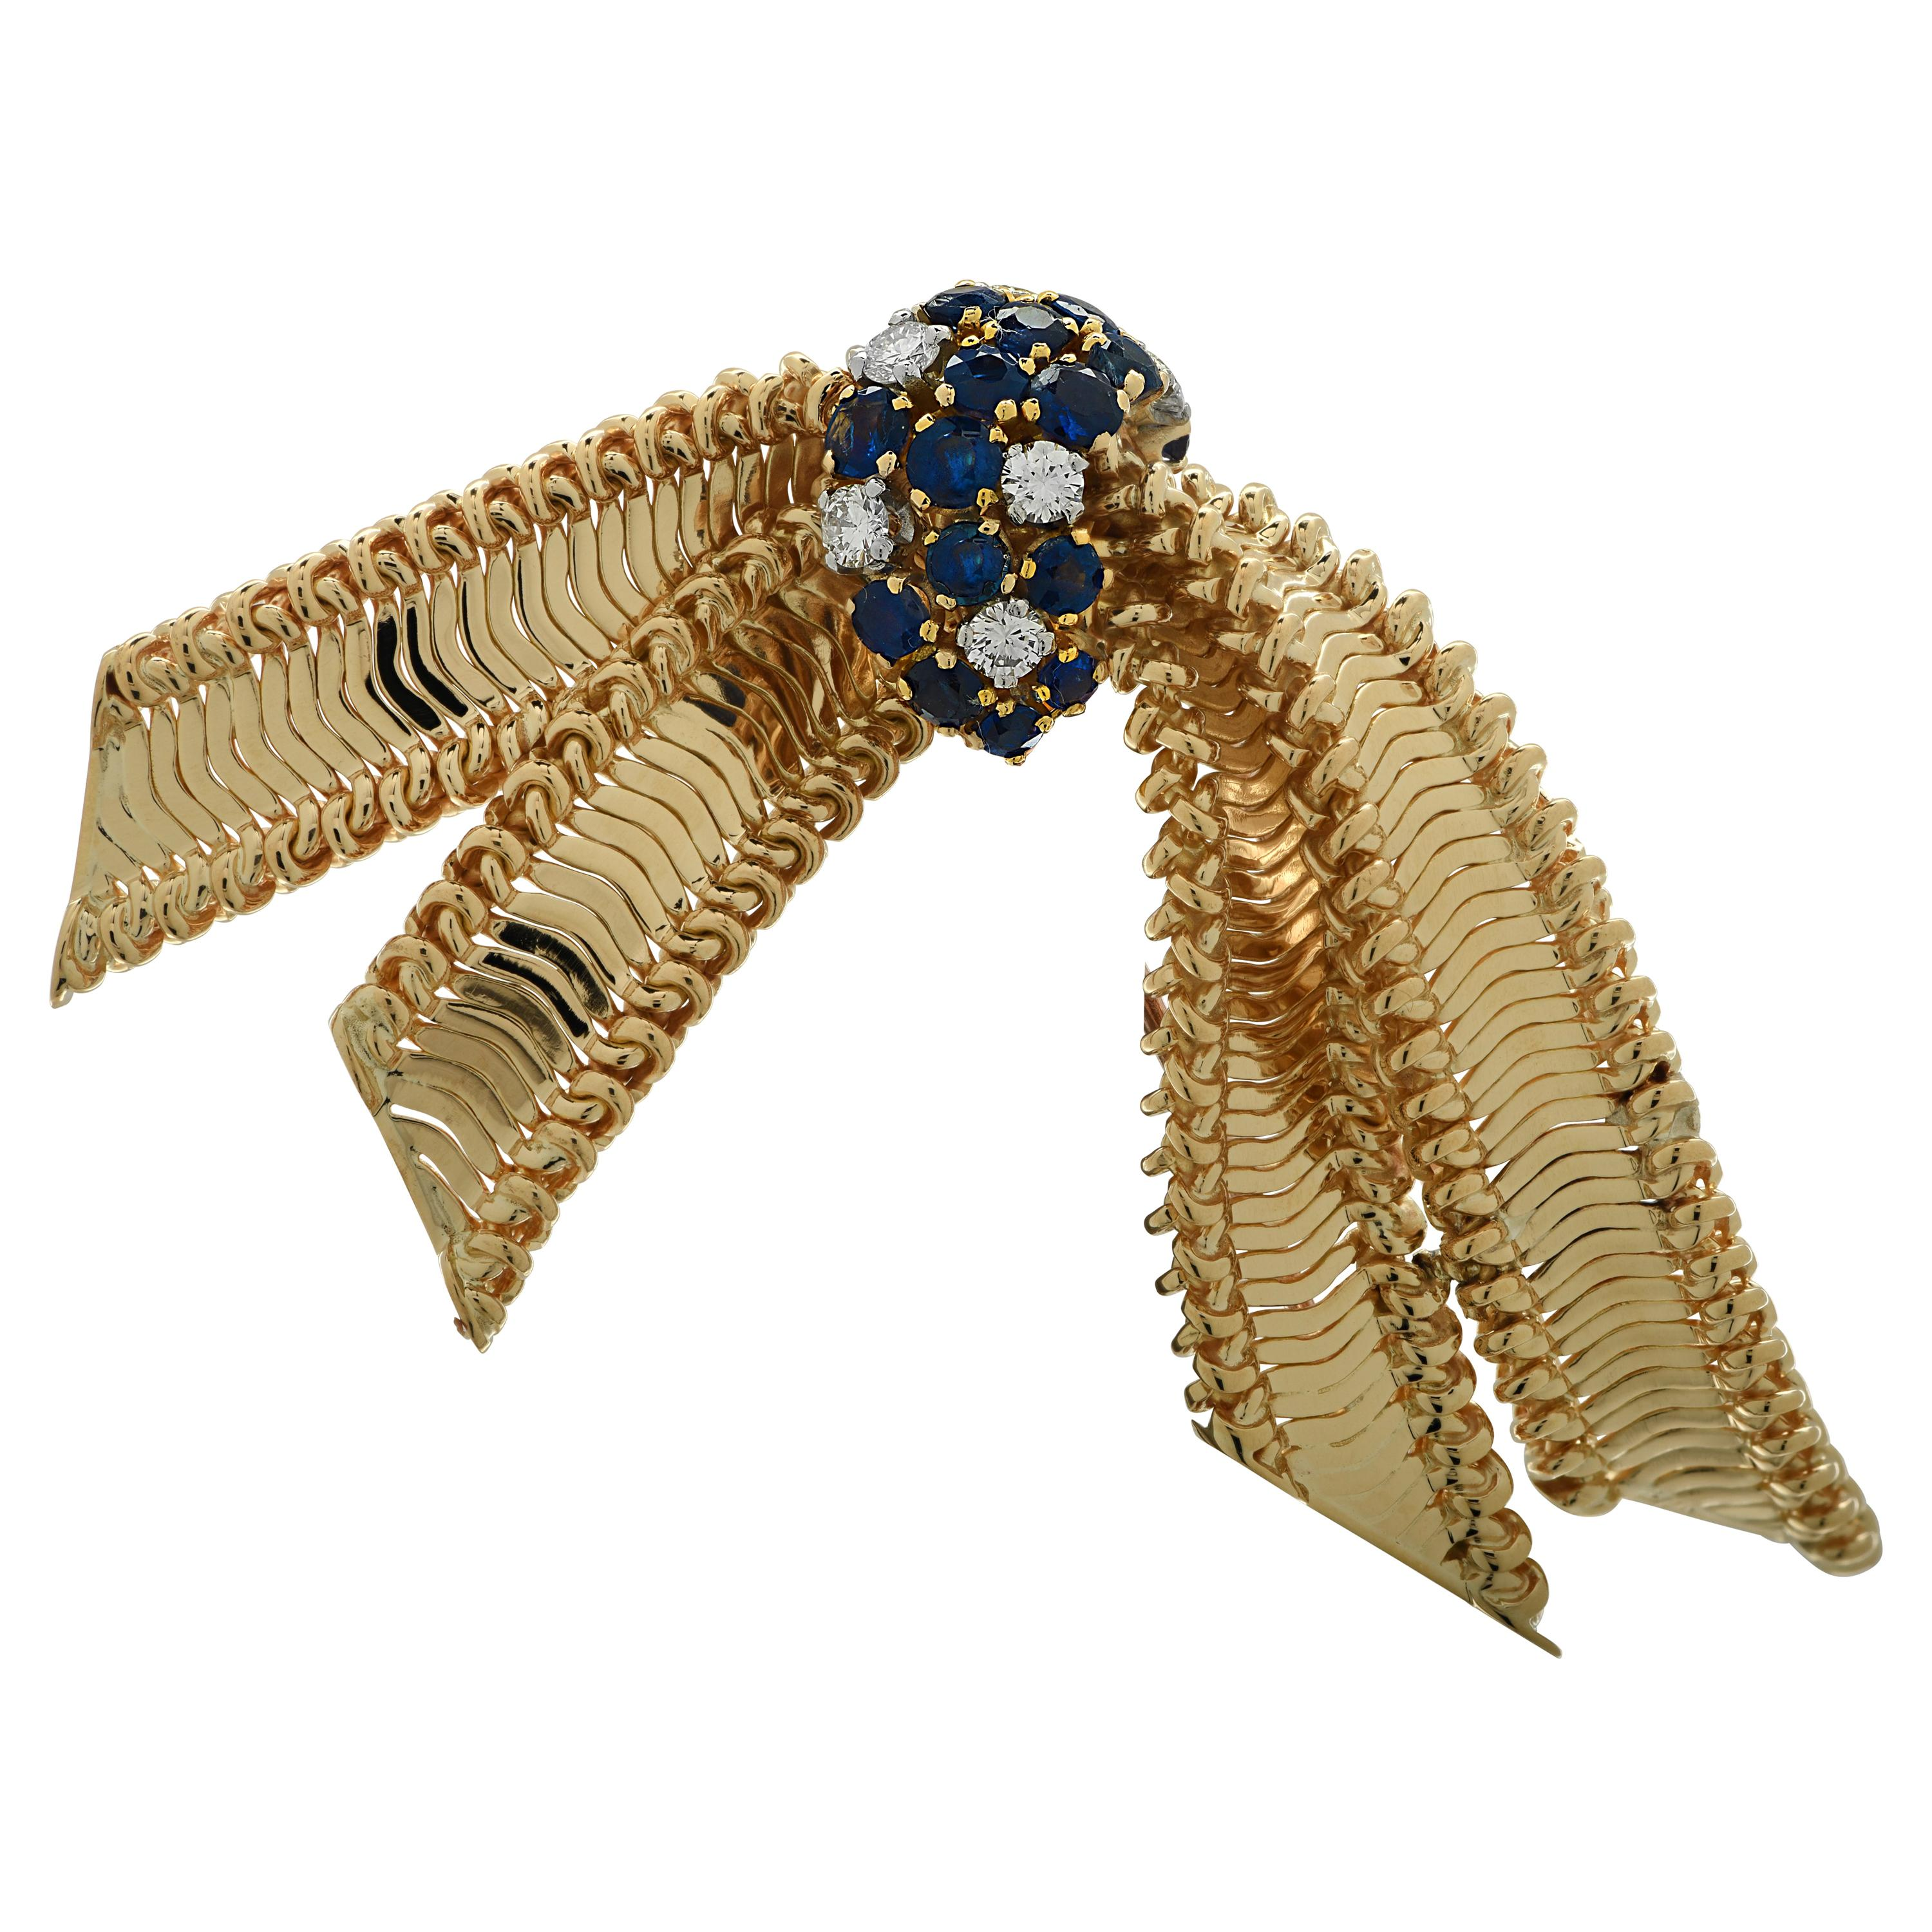 Creative Brooch Pin Brooch Pop flower brooch Jewelry electroplating guxi high-end clothing with brooch brooch 2-piece set Badge Pin Lapel Pin